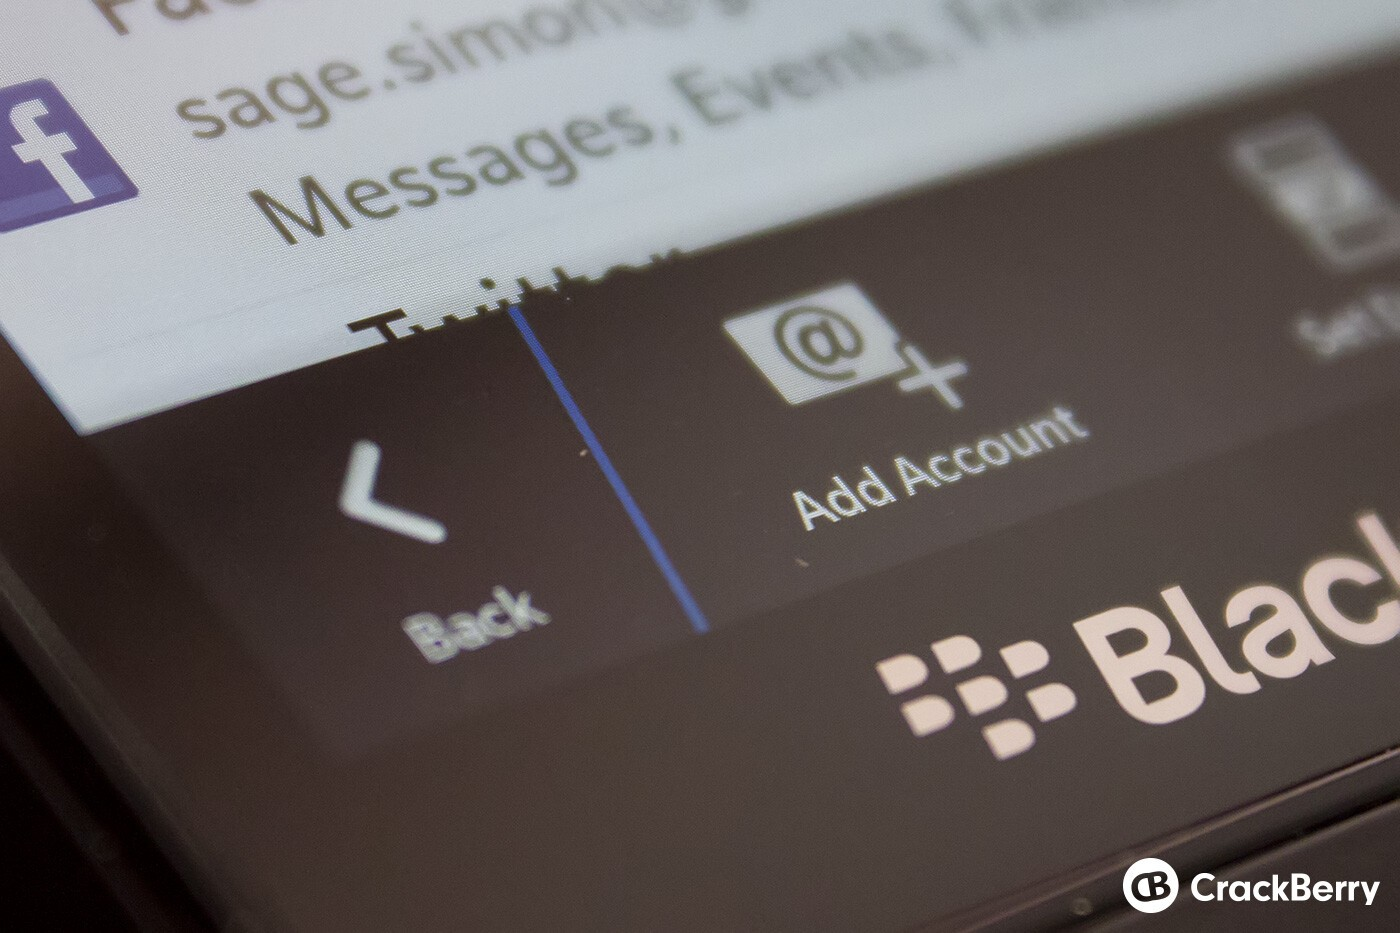 Adding accounts to BlackBerry Z10